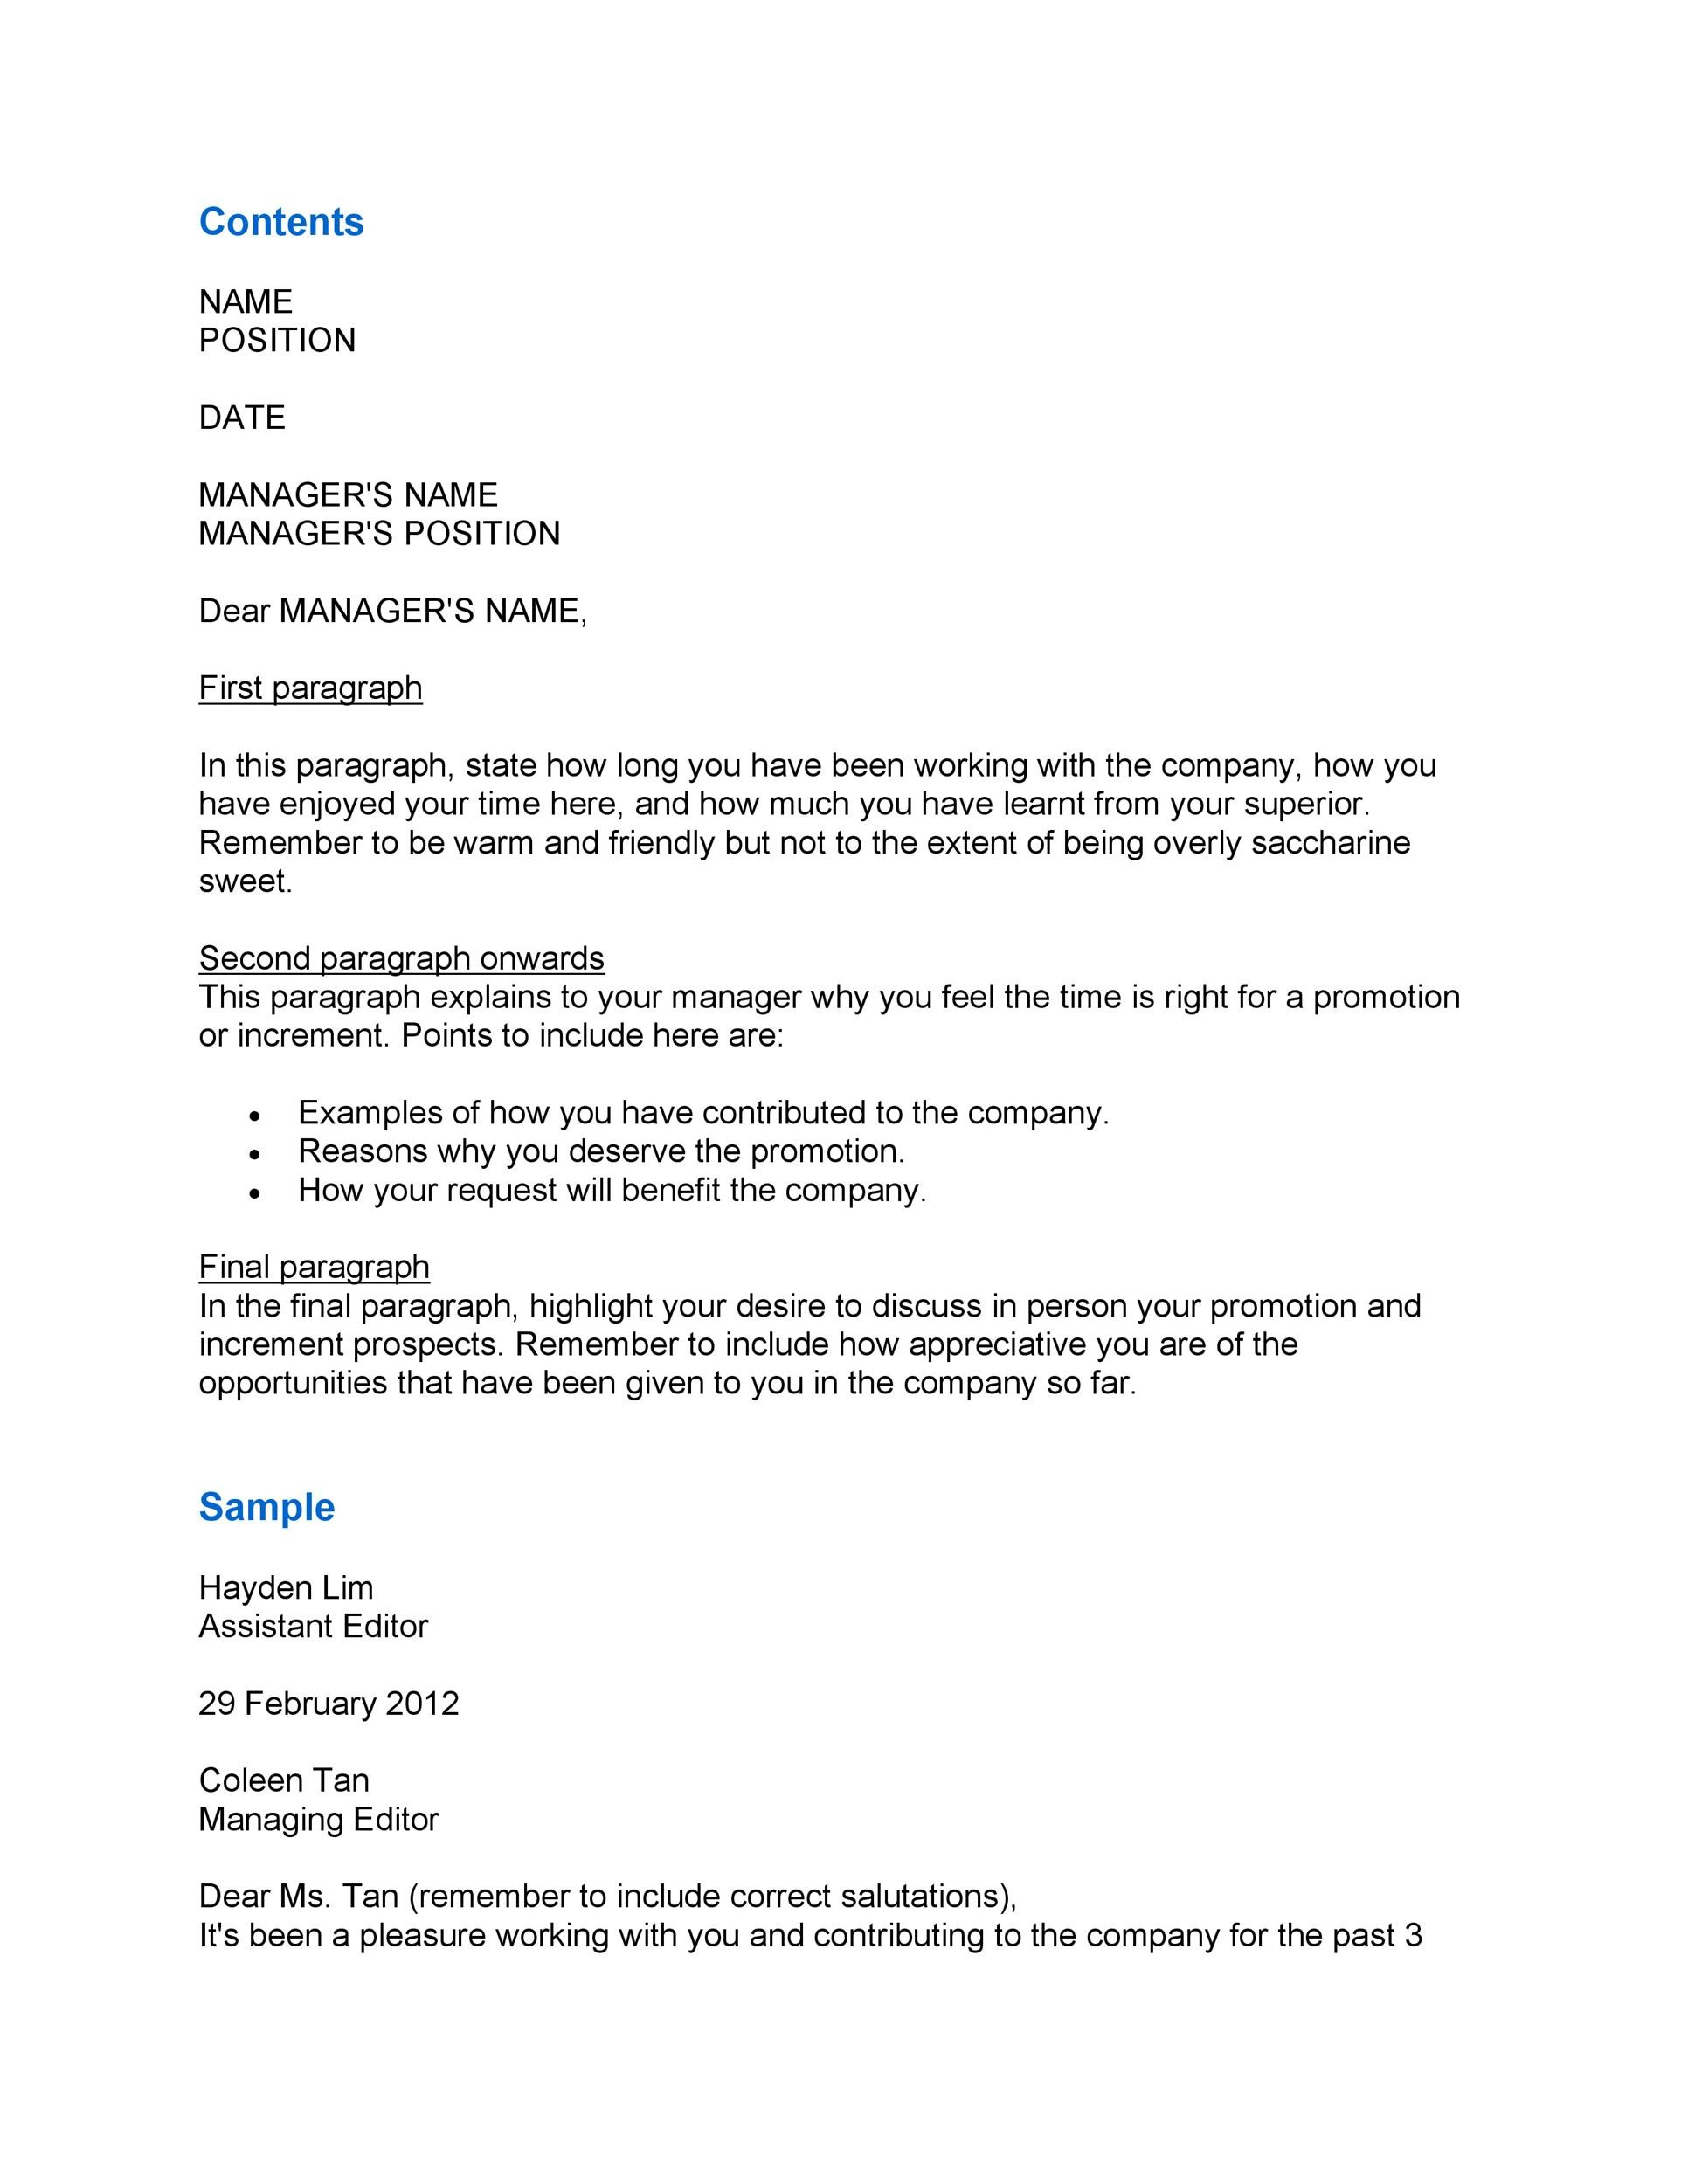 50 Best Salary Increase Letters (How To Ask For A Raise?) ᐅ